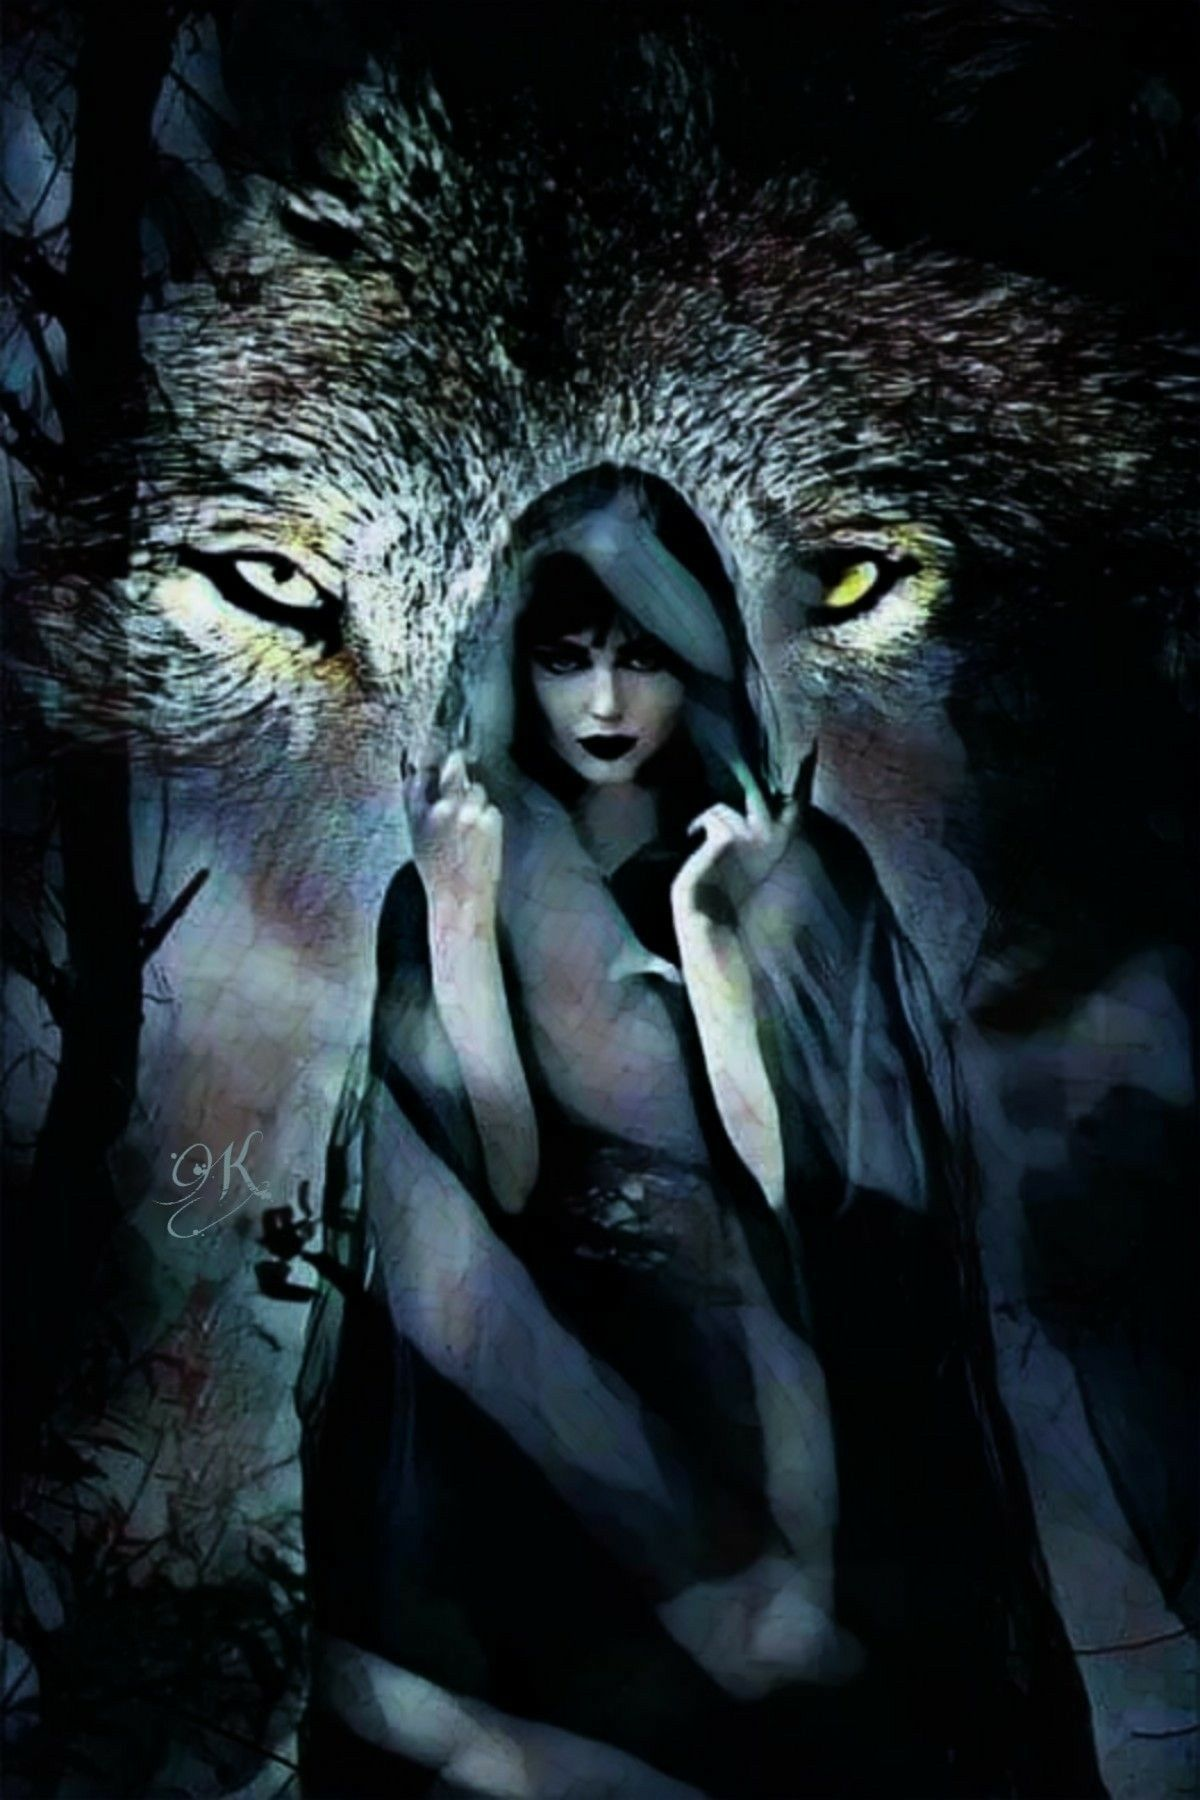 Pin by Sandy on lobos | Wolf art, Wolves and women, Magical wolf